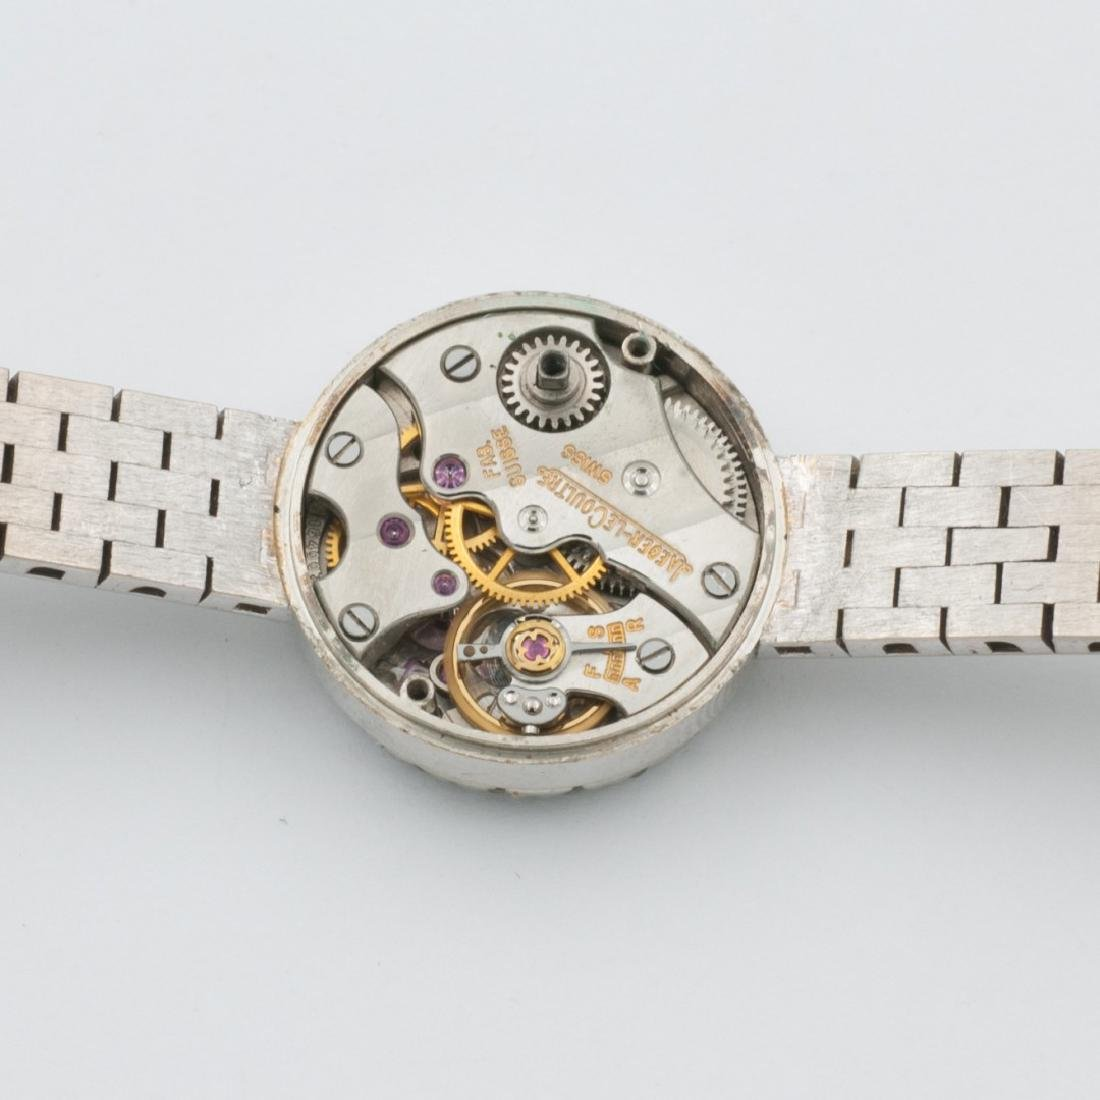 LADIES WHITE GOLD WRISTWATCH JAEGER-LECOULTRE, '60S